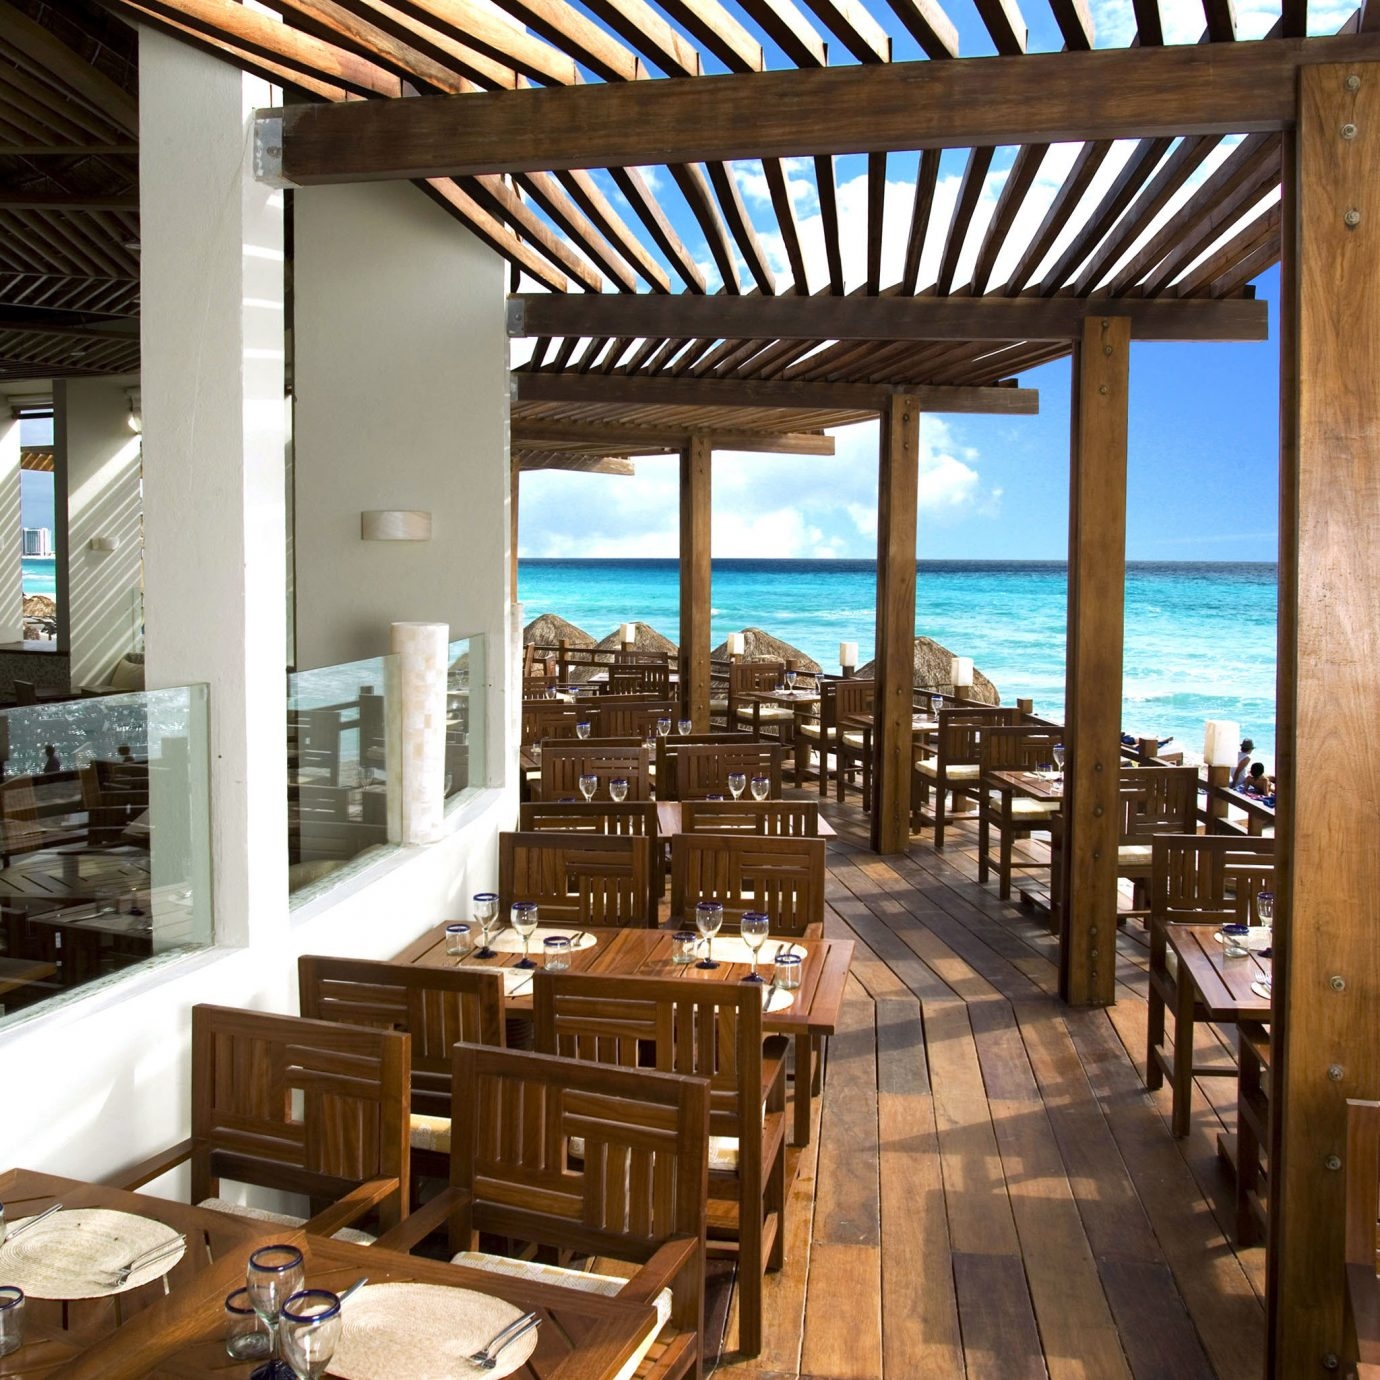 All-inclusive All-Inclusive Resorts Beachfront Deck Drink Eat Hotels Luxury Solo Travel chair property restaurant Resort Lobby overlooking